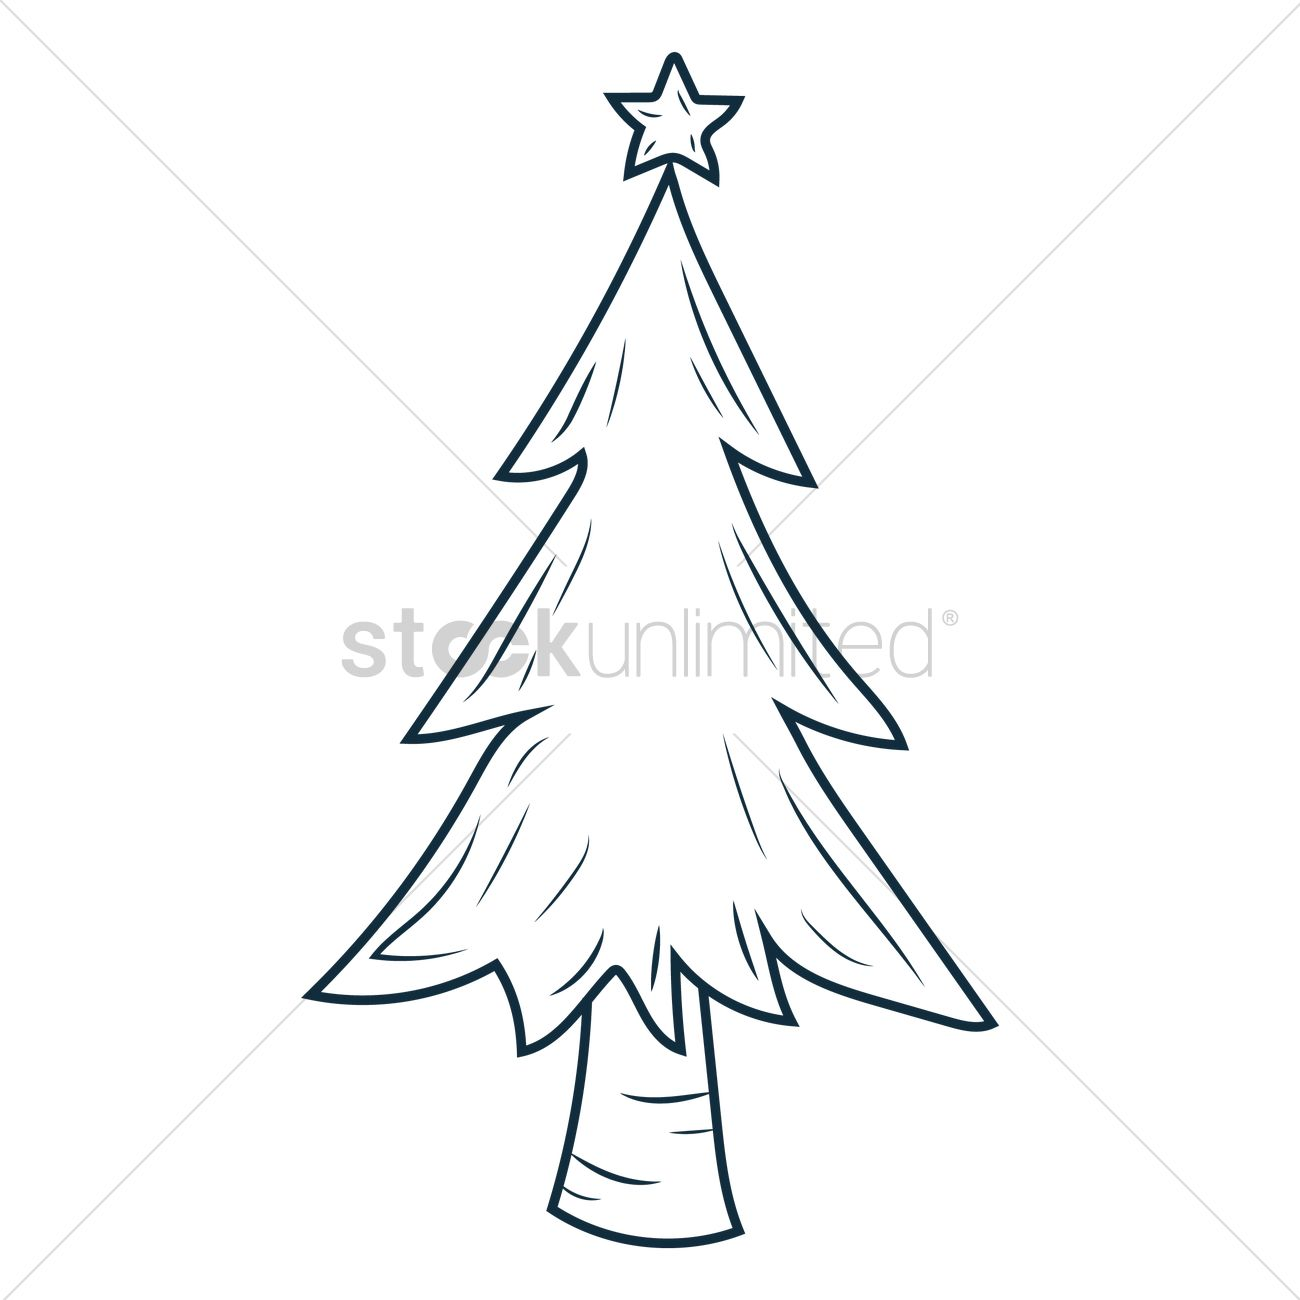 Free Christmas Tree Vector Image 1574666 Stockunlimited